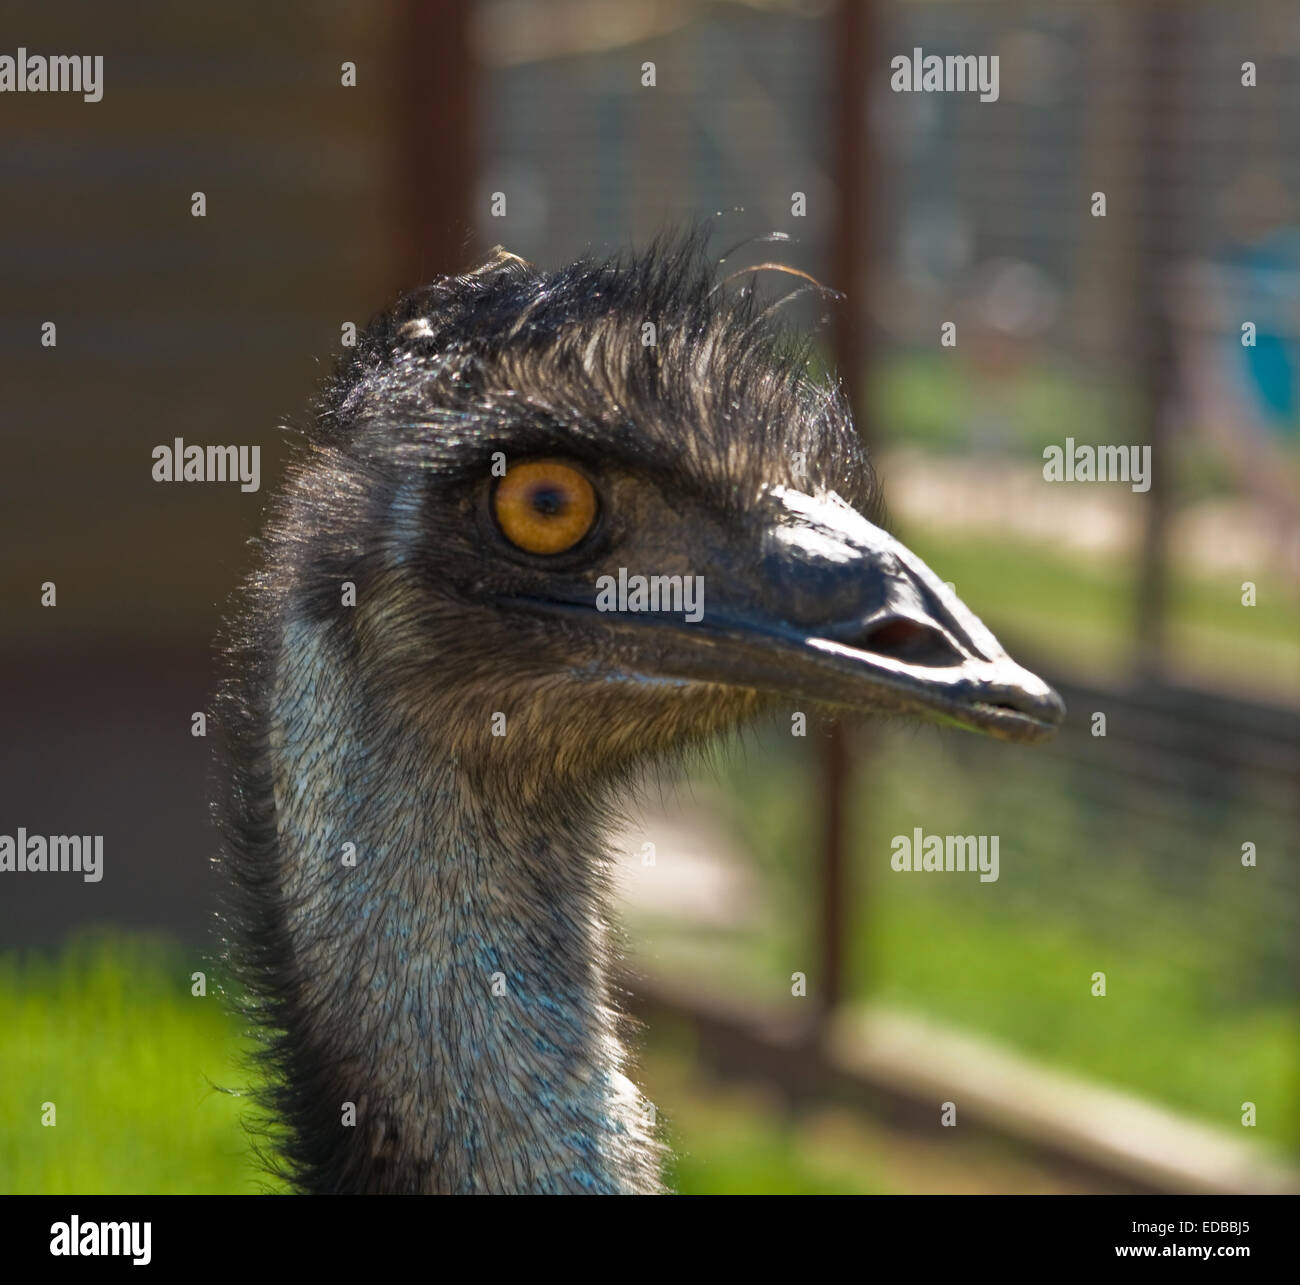 Head of two-toed ostrich (struthio camelus), lives in Africa - Stock Image